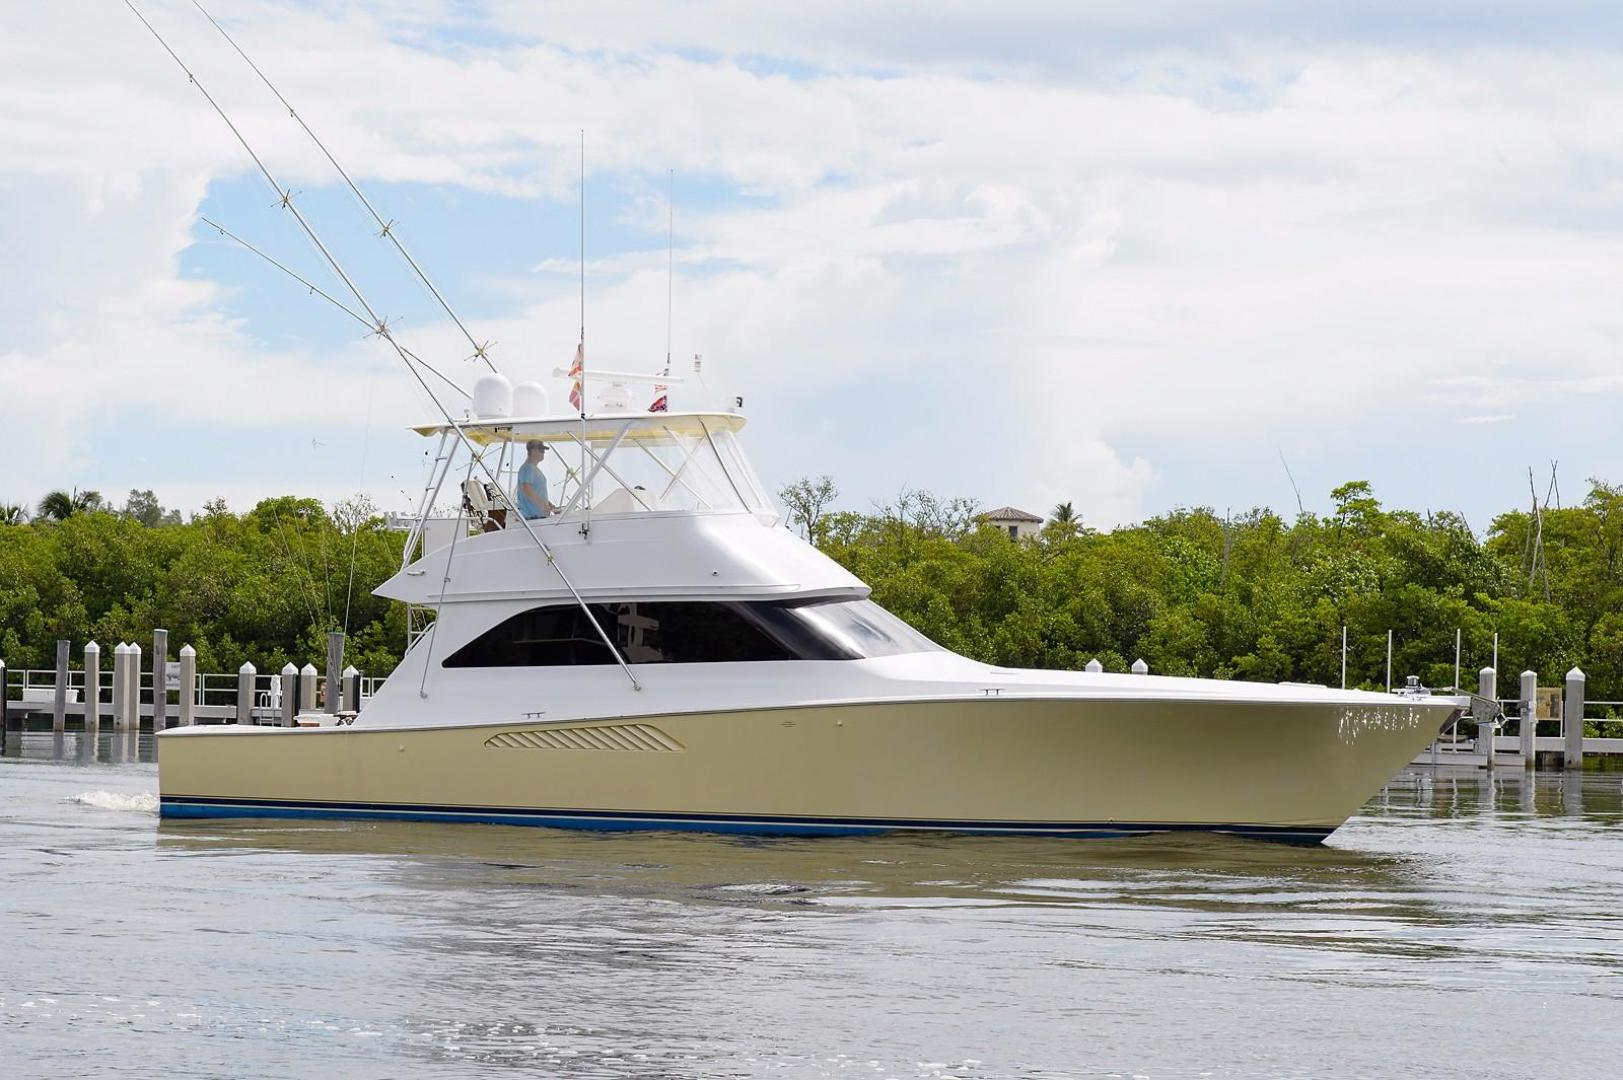 Viking-52 Convertible 2002-Double Eagle Boca Raton-Florida-United States-458764 | Thumbnail